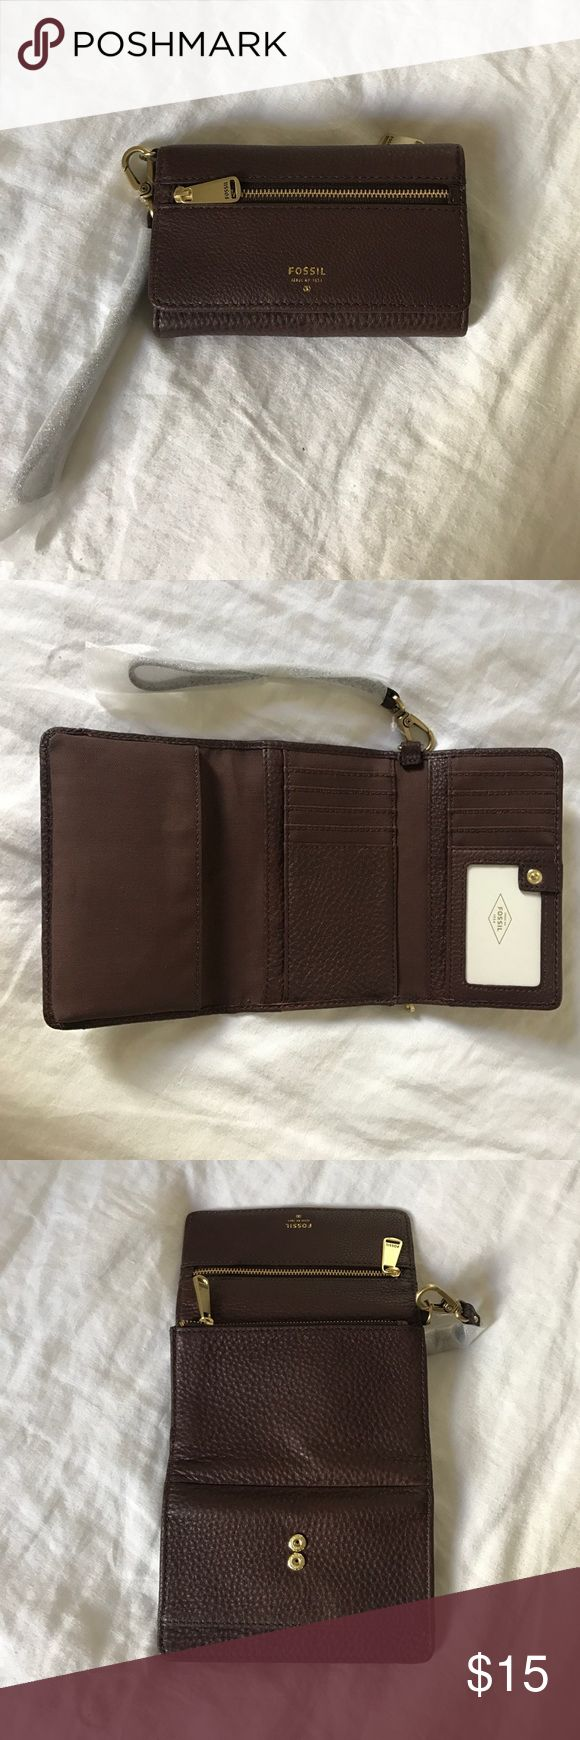 "NWT Fossil Brown Leather Smartphone Wristlet NWT Fossil Brown Leather Wristlet/Wallet 6""x4"" Wristlet strap length is 5.5"" Never used!! Cell phone pocket that fits an iPhone 6, 6S, and 7. 10 card slots! Perfect for every day use!! Fossil Bags Clutches & Wristlets"